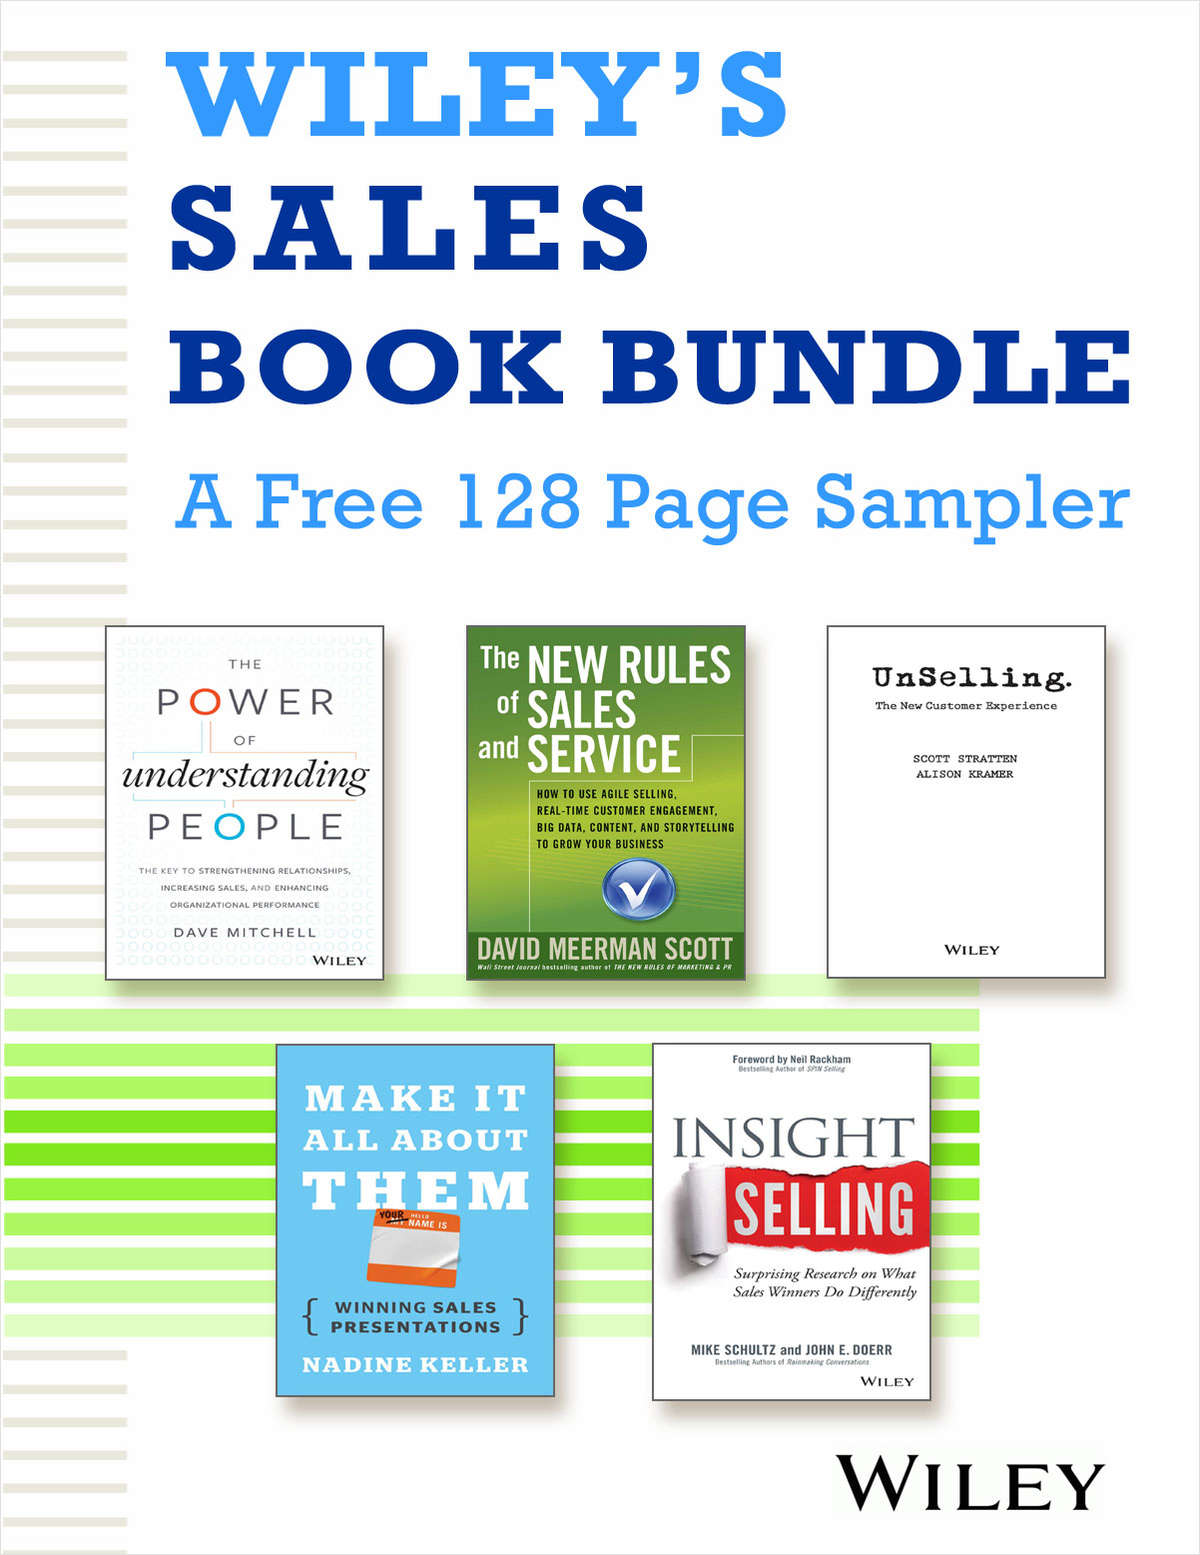 Wiley's Sales Book Bundle - A FREE 128 Page Sampler